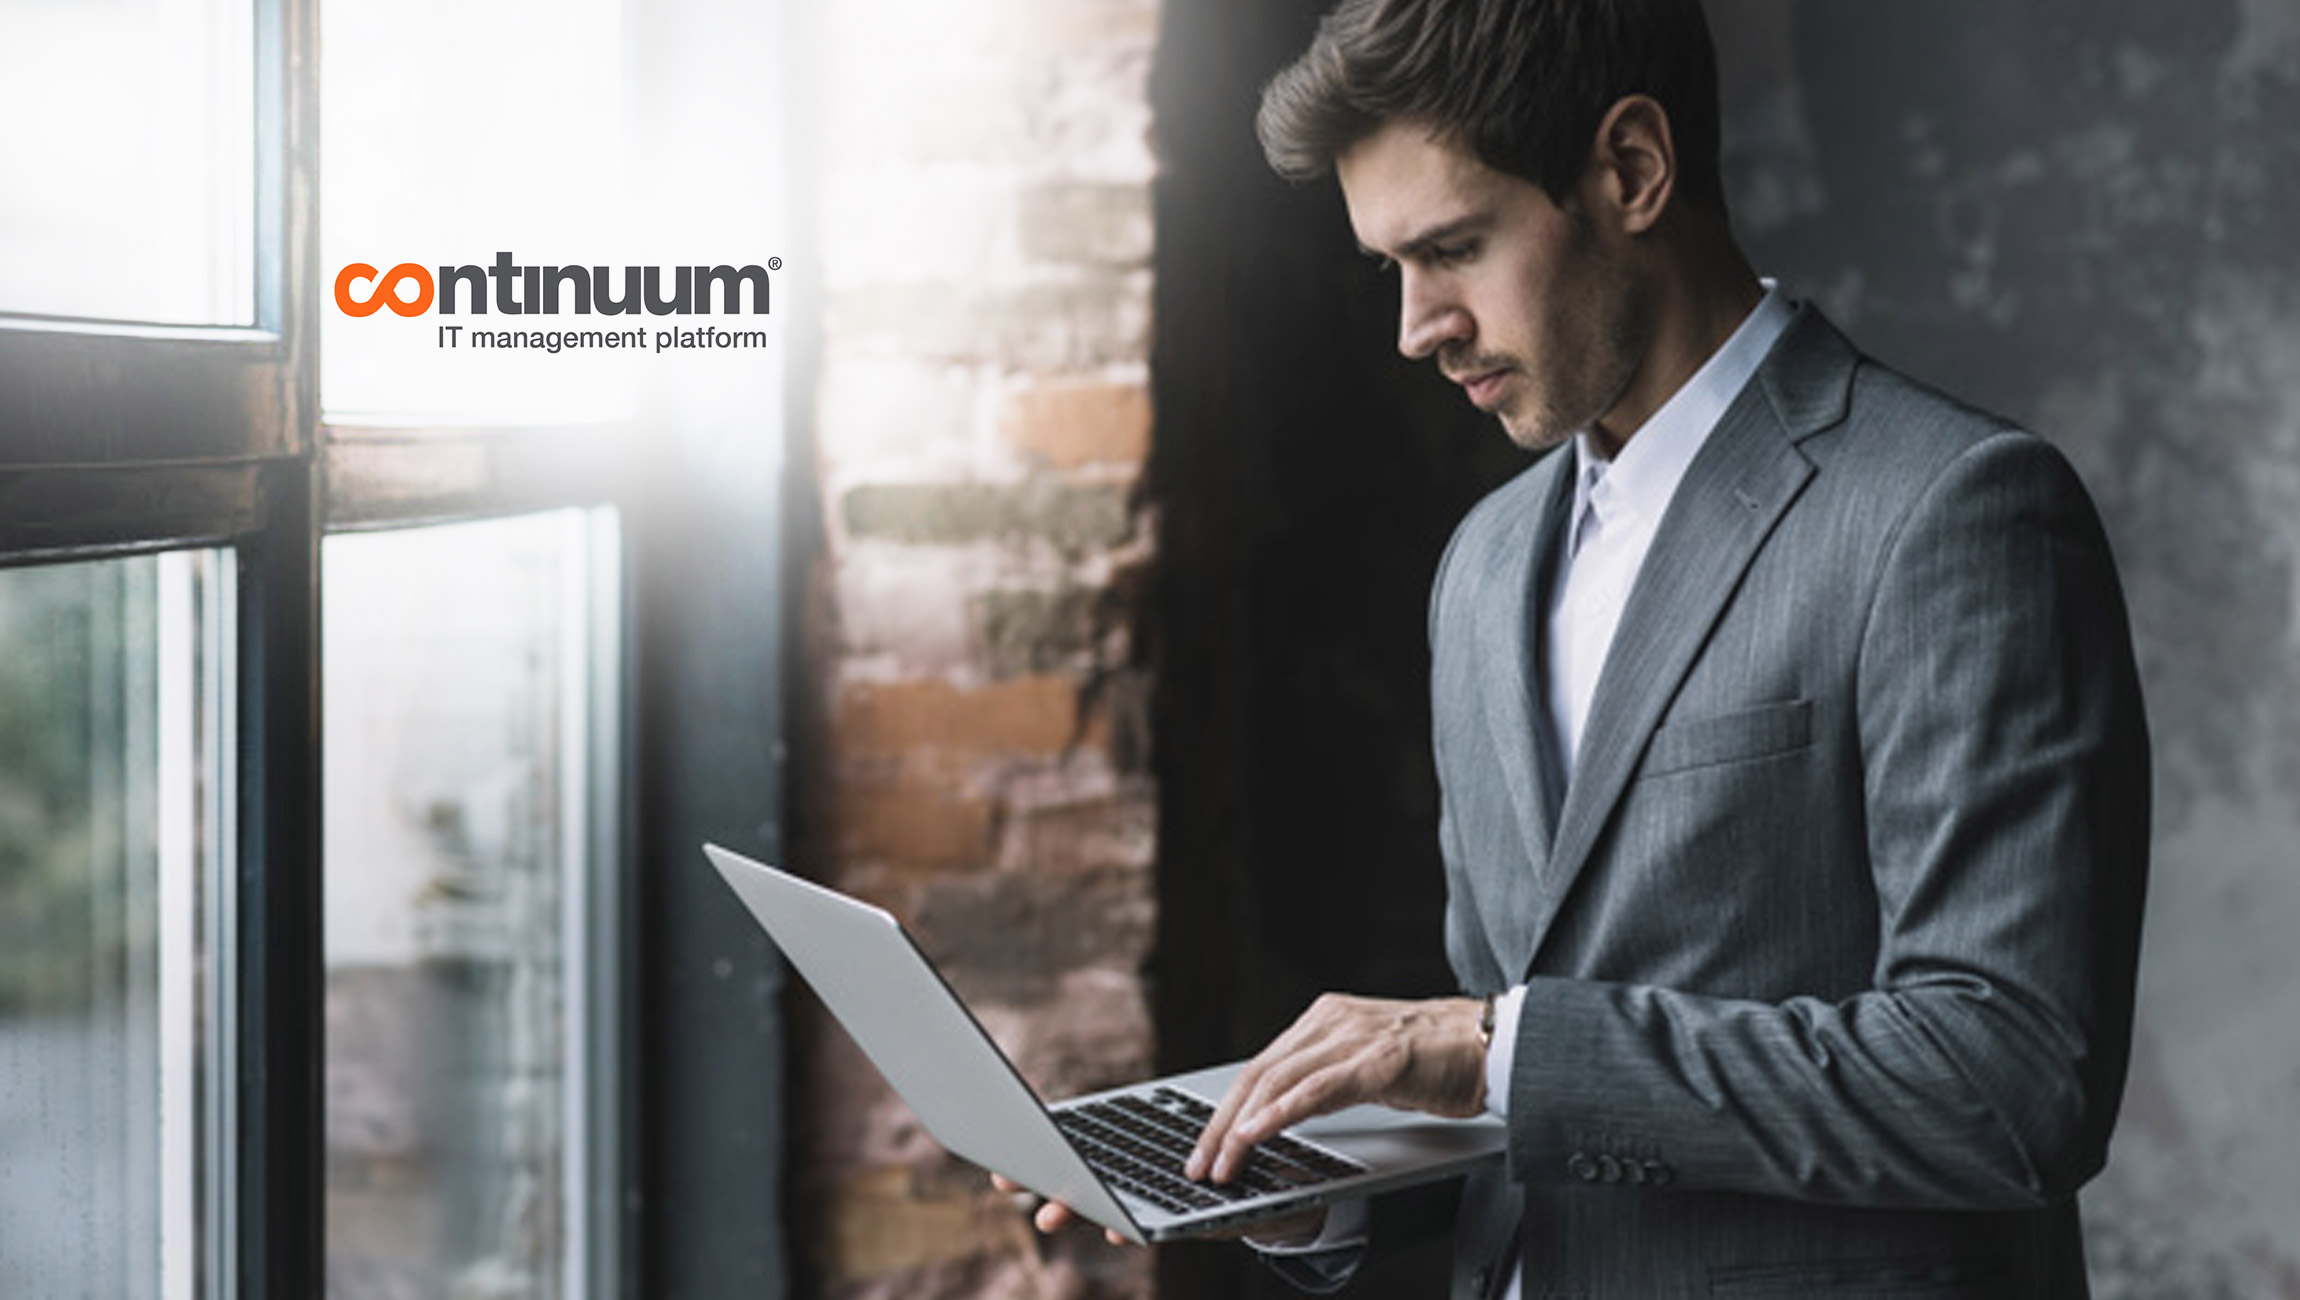 Continuum Acquires BrightGauge, the Leading Business Intelligence Platform for MSPs